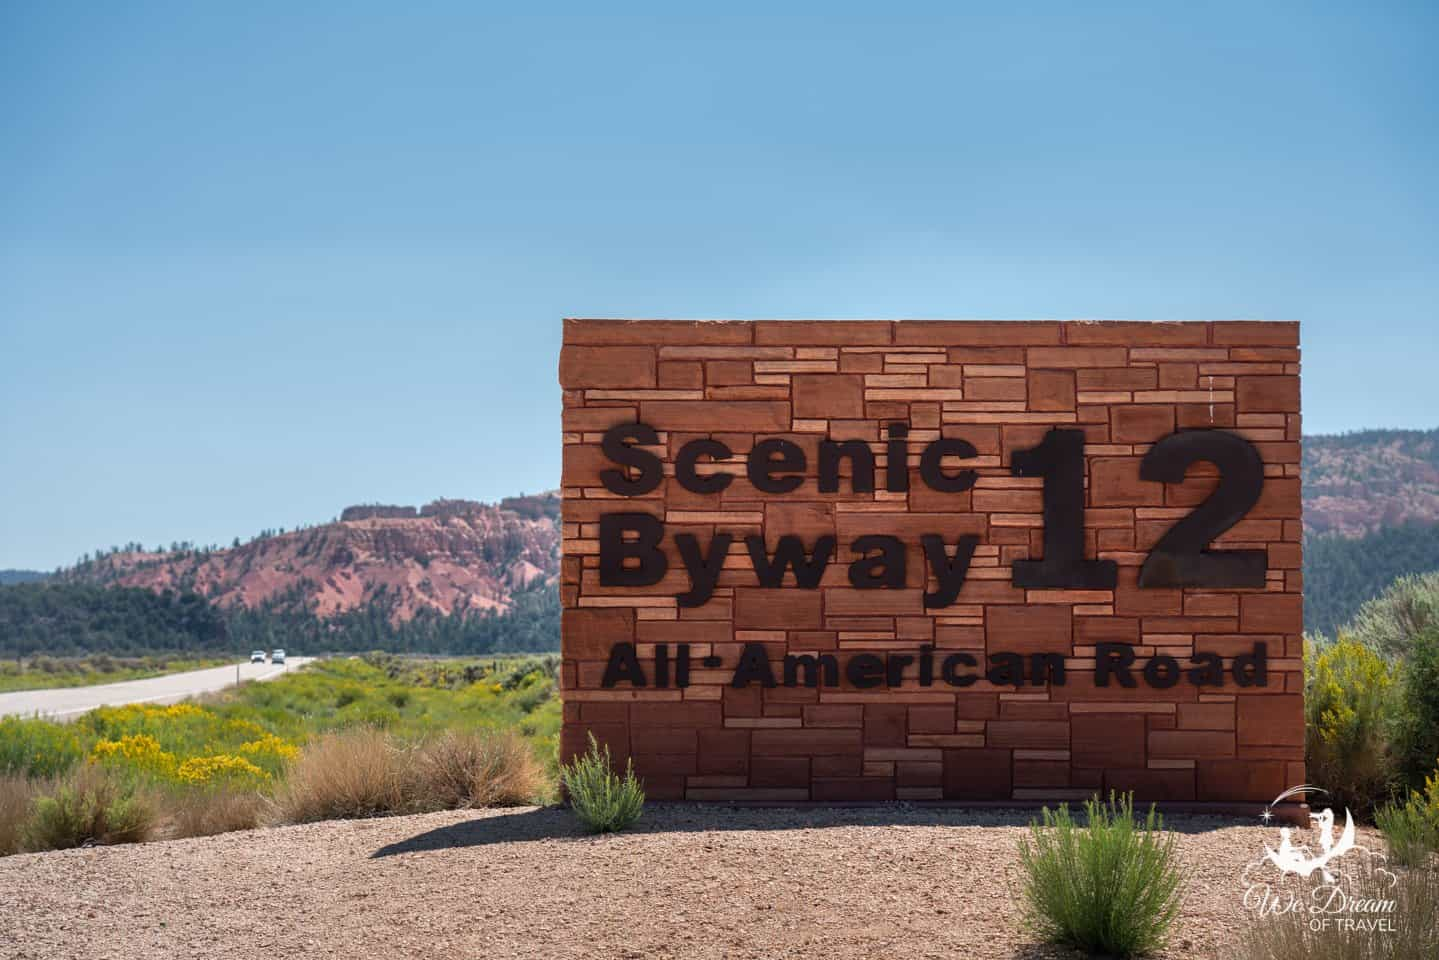 Scenic Byway 12 is a stunning highway connecting Bryce Canyon to Zion National Park.